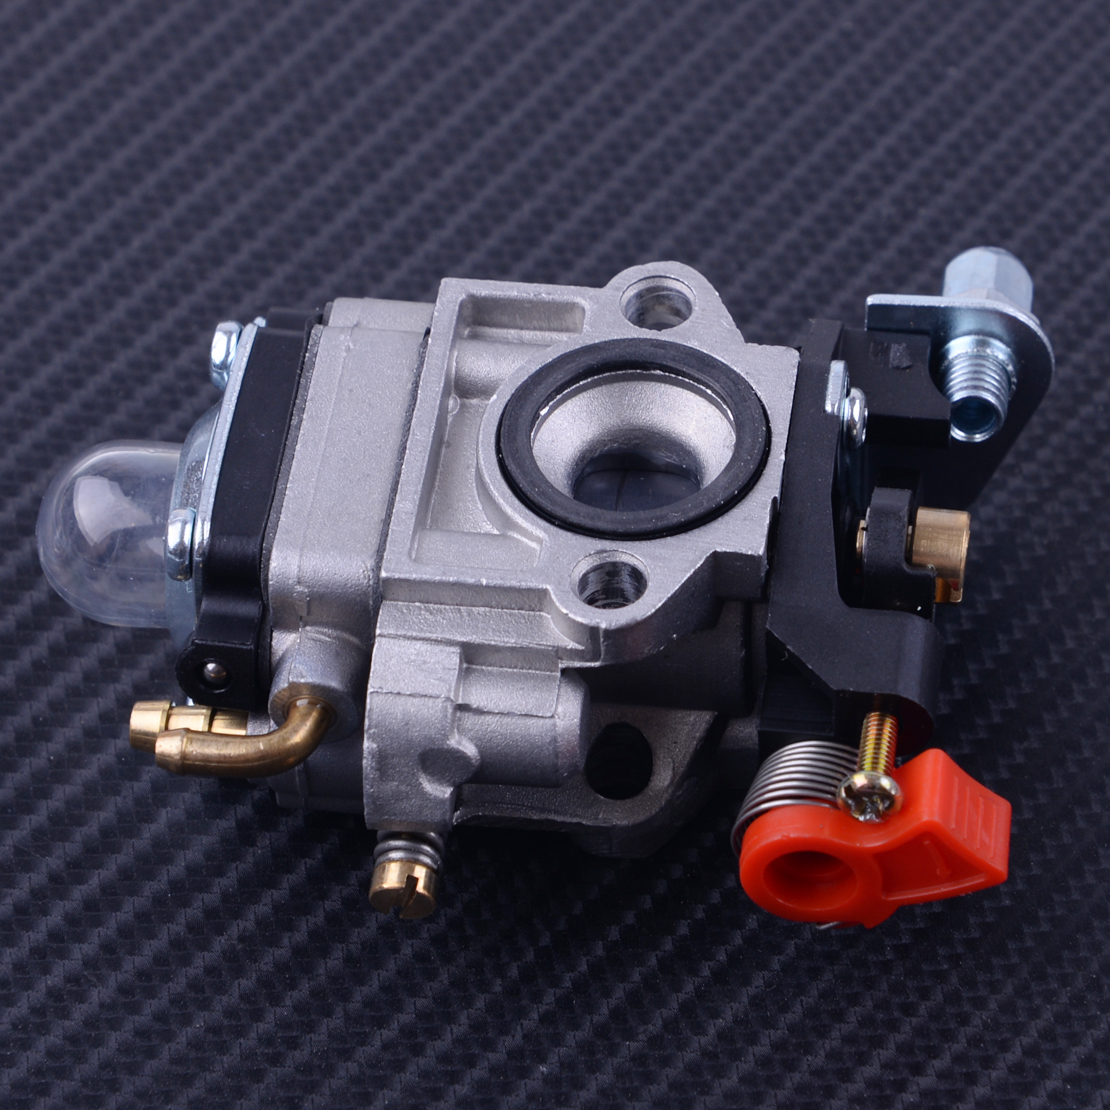 LETAOSK Carburetor Fit For 24cc 25cc 26cc Brushcutter Generator Hedge Trimmer Leaf Blower Parts